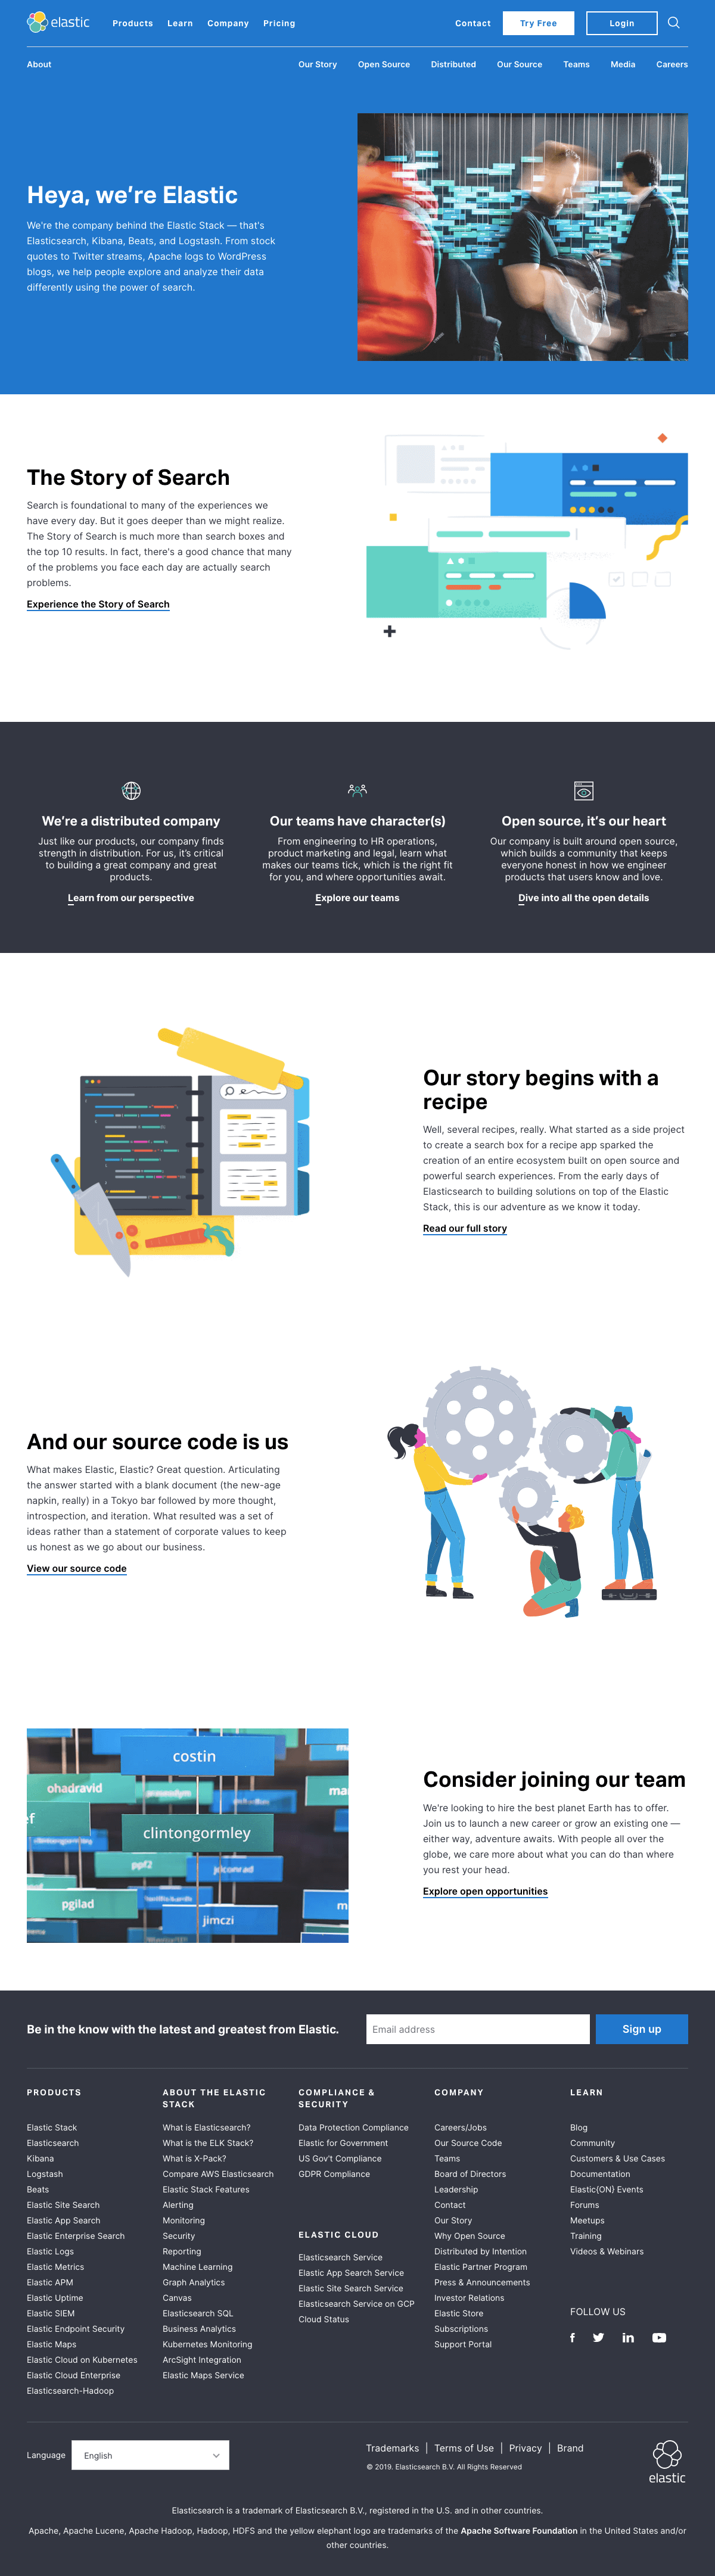 Elastic - About us page